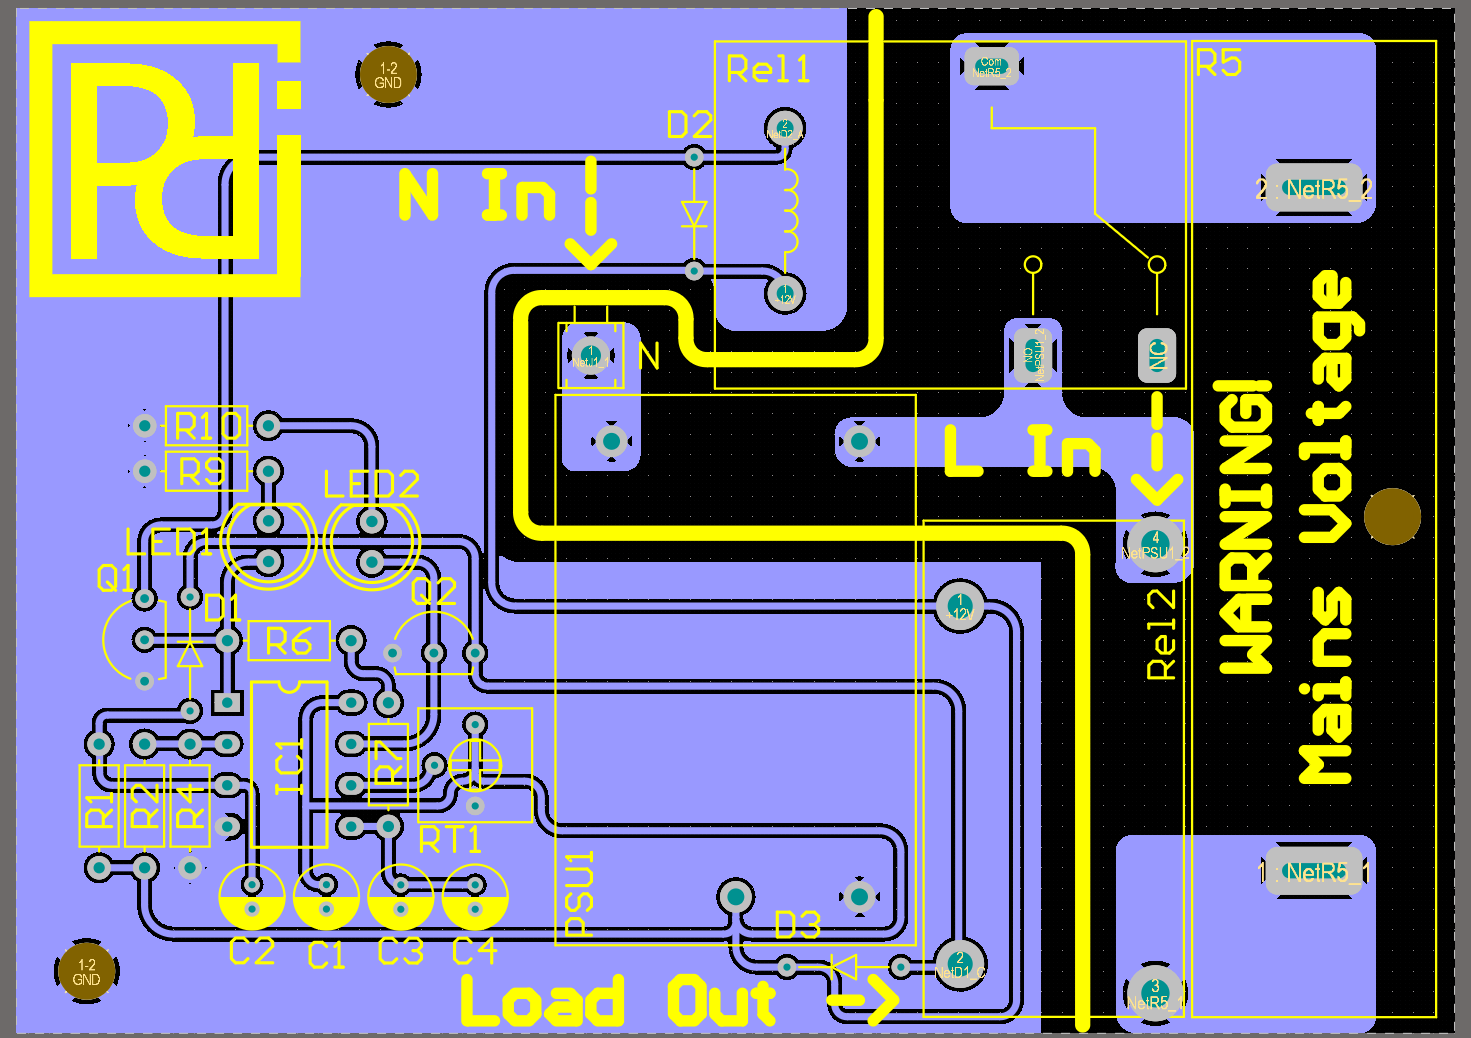 PCB layout of the inrush current limiter